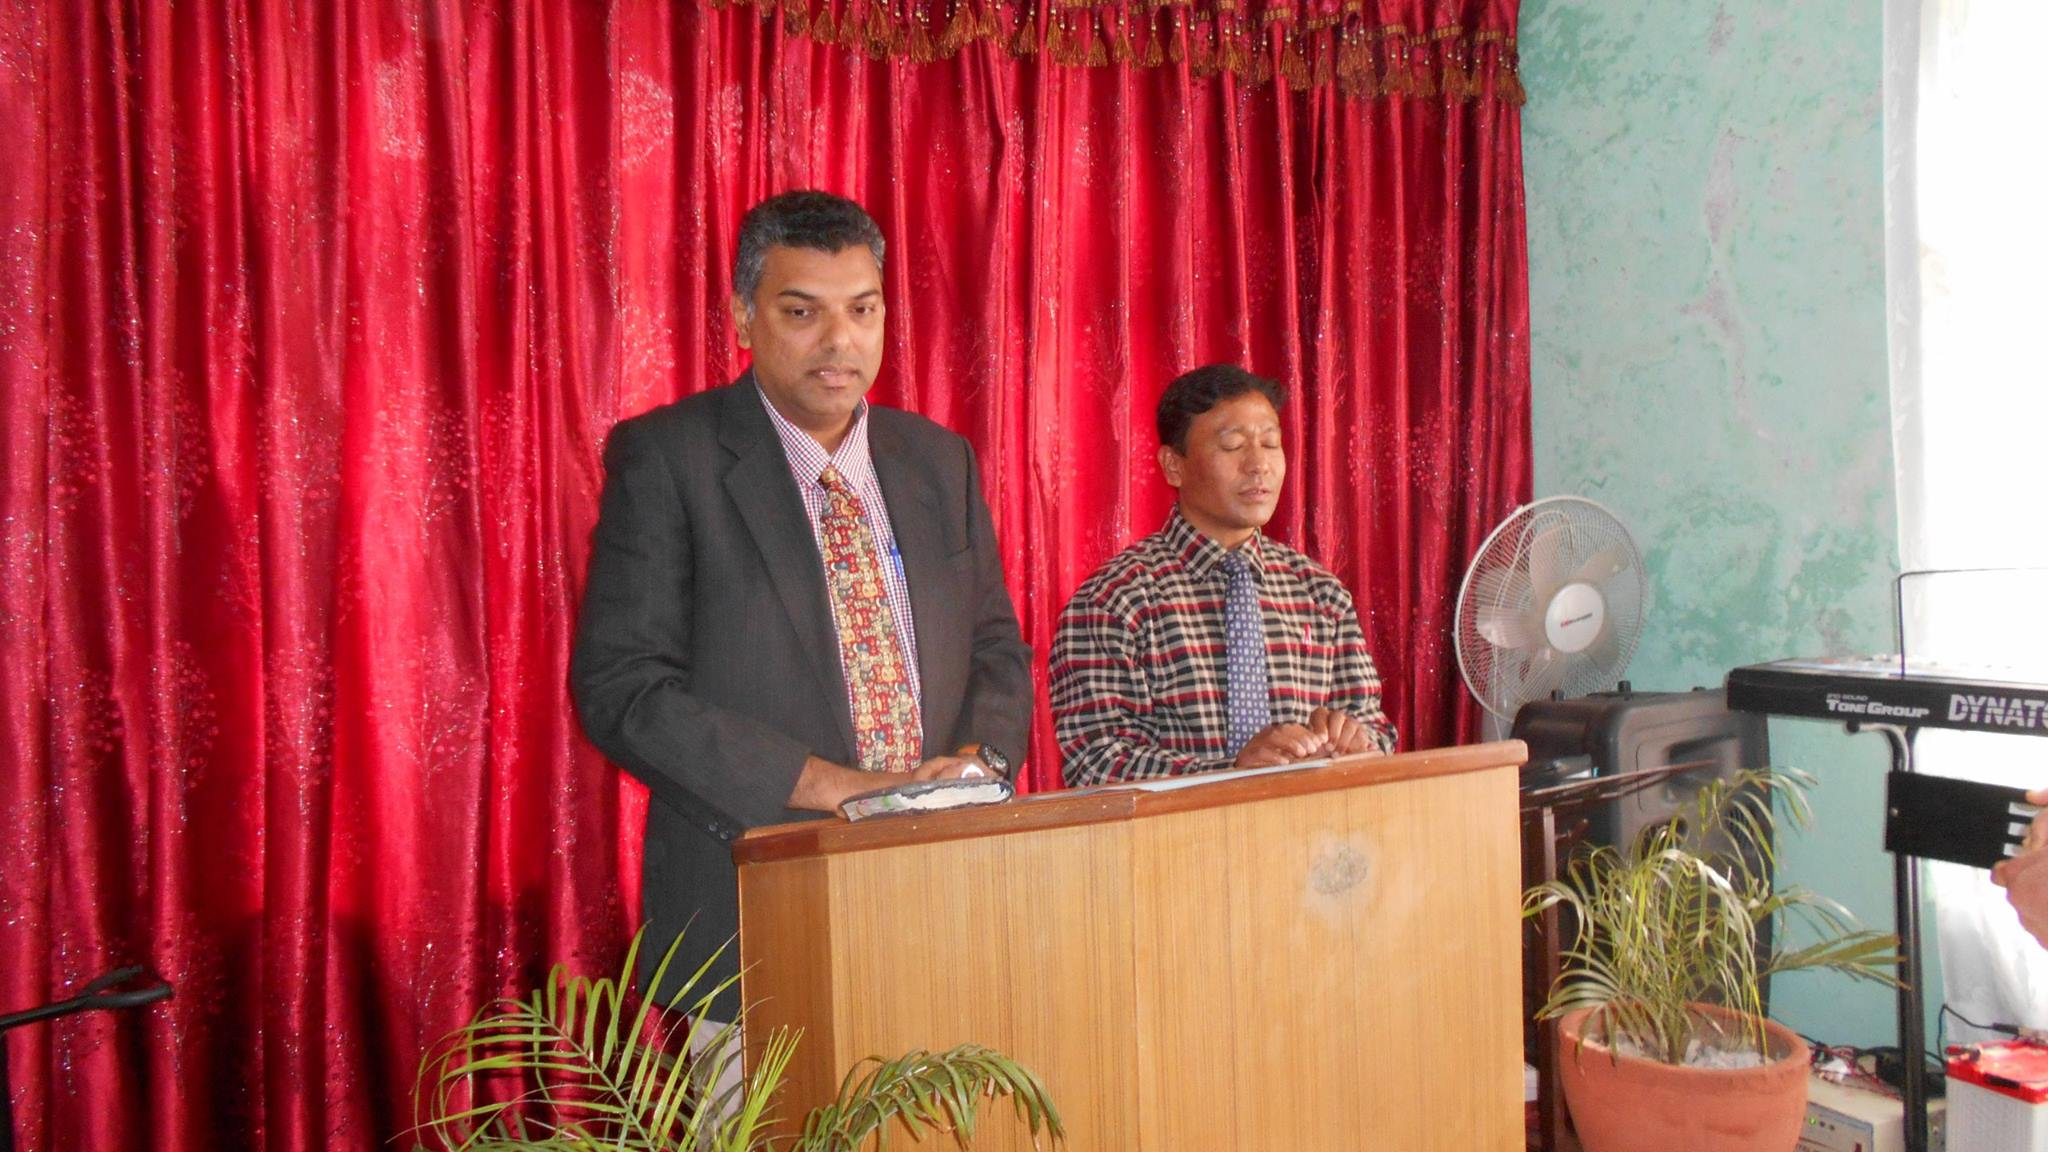 Nilesh preaching at Bhaktapur assembly with translation.